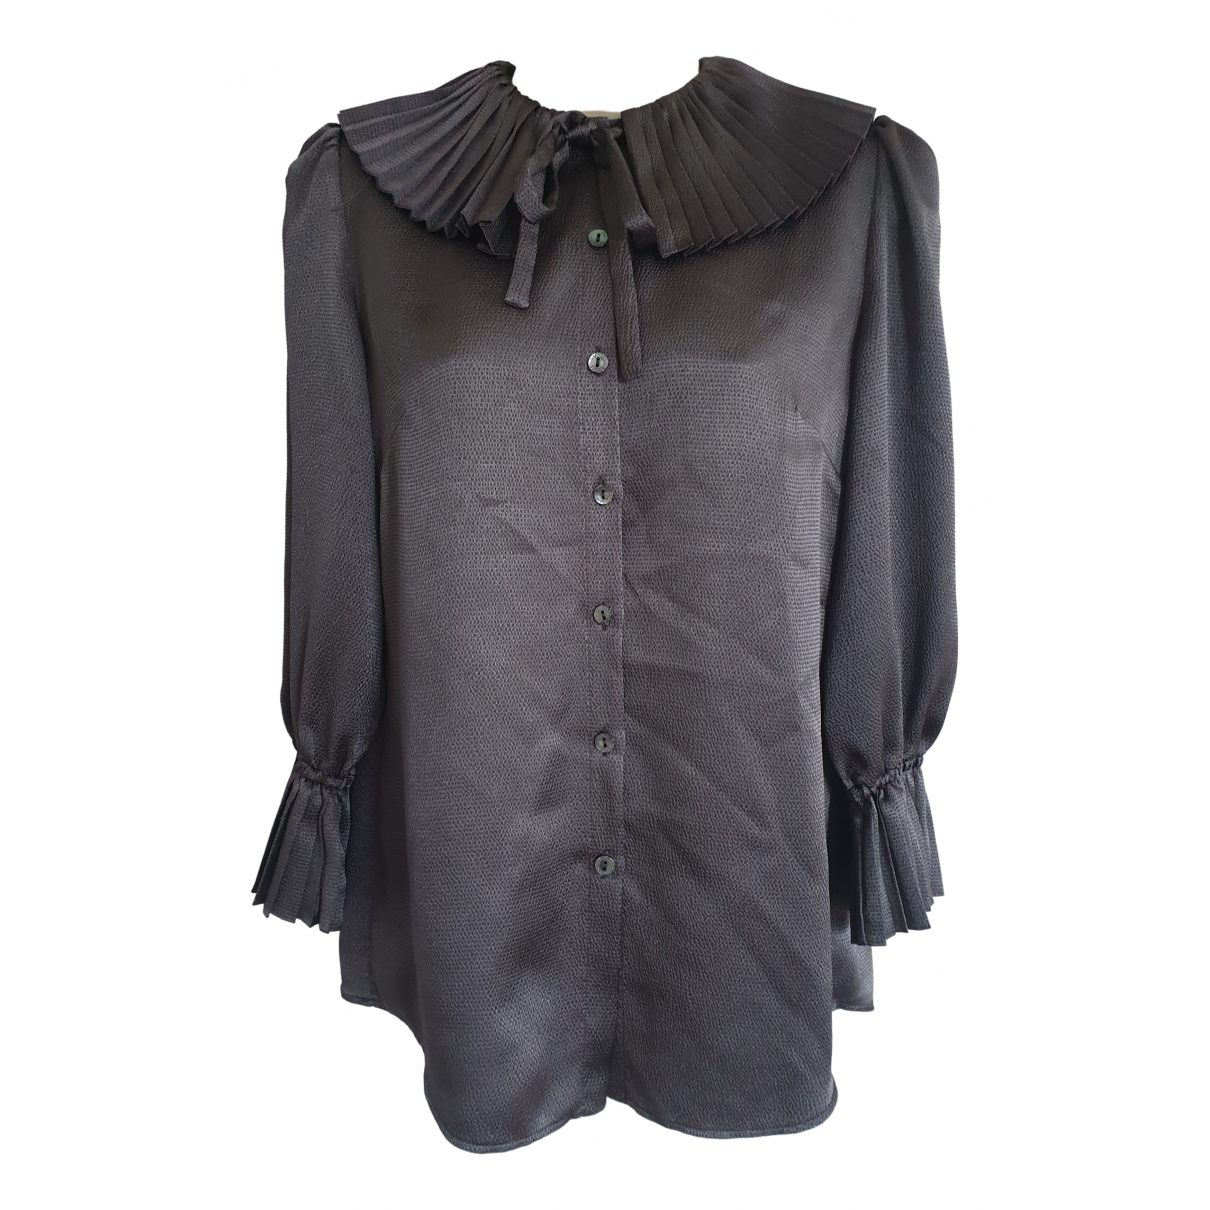 Dolce & Gabbana \N Anthracite  top for Women 38 IT